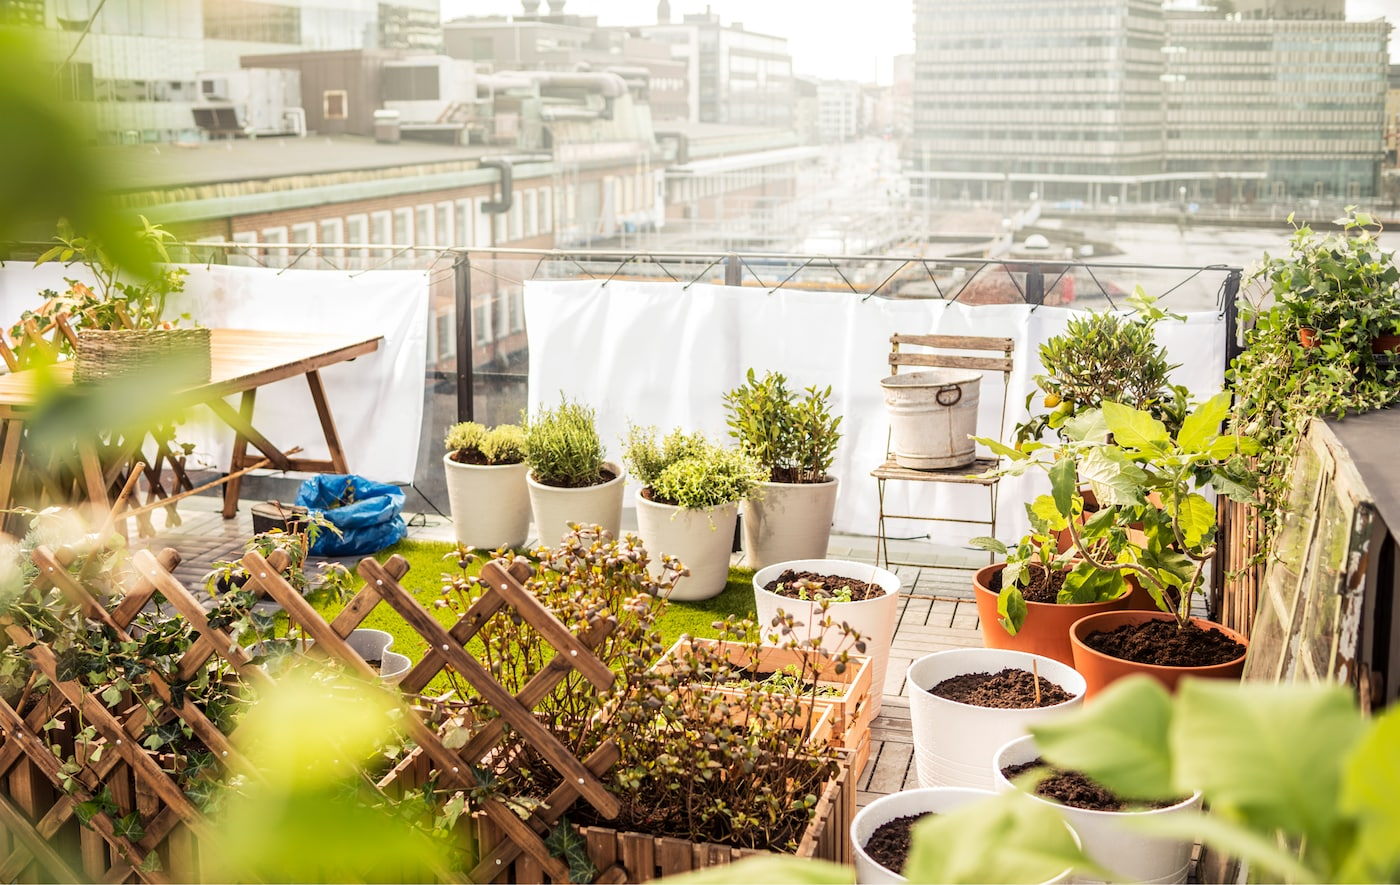 The Very Doable Rooftop Garden